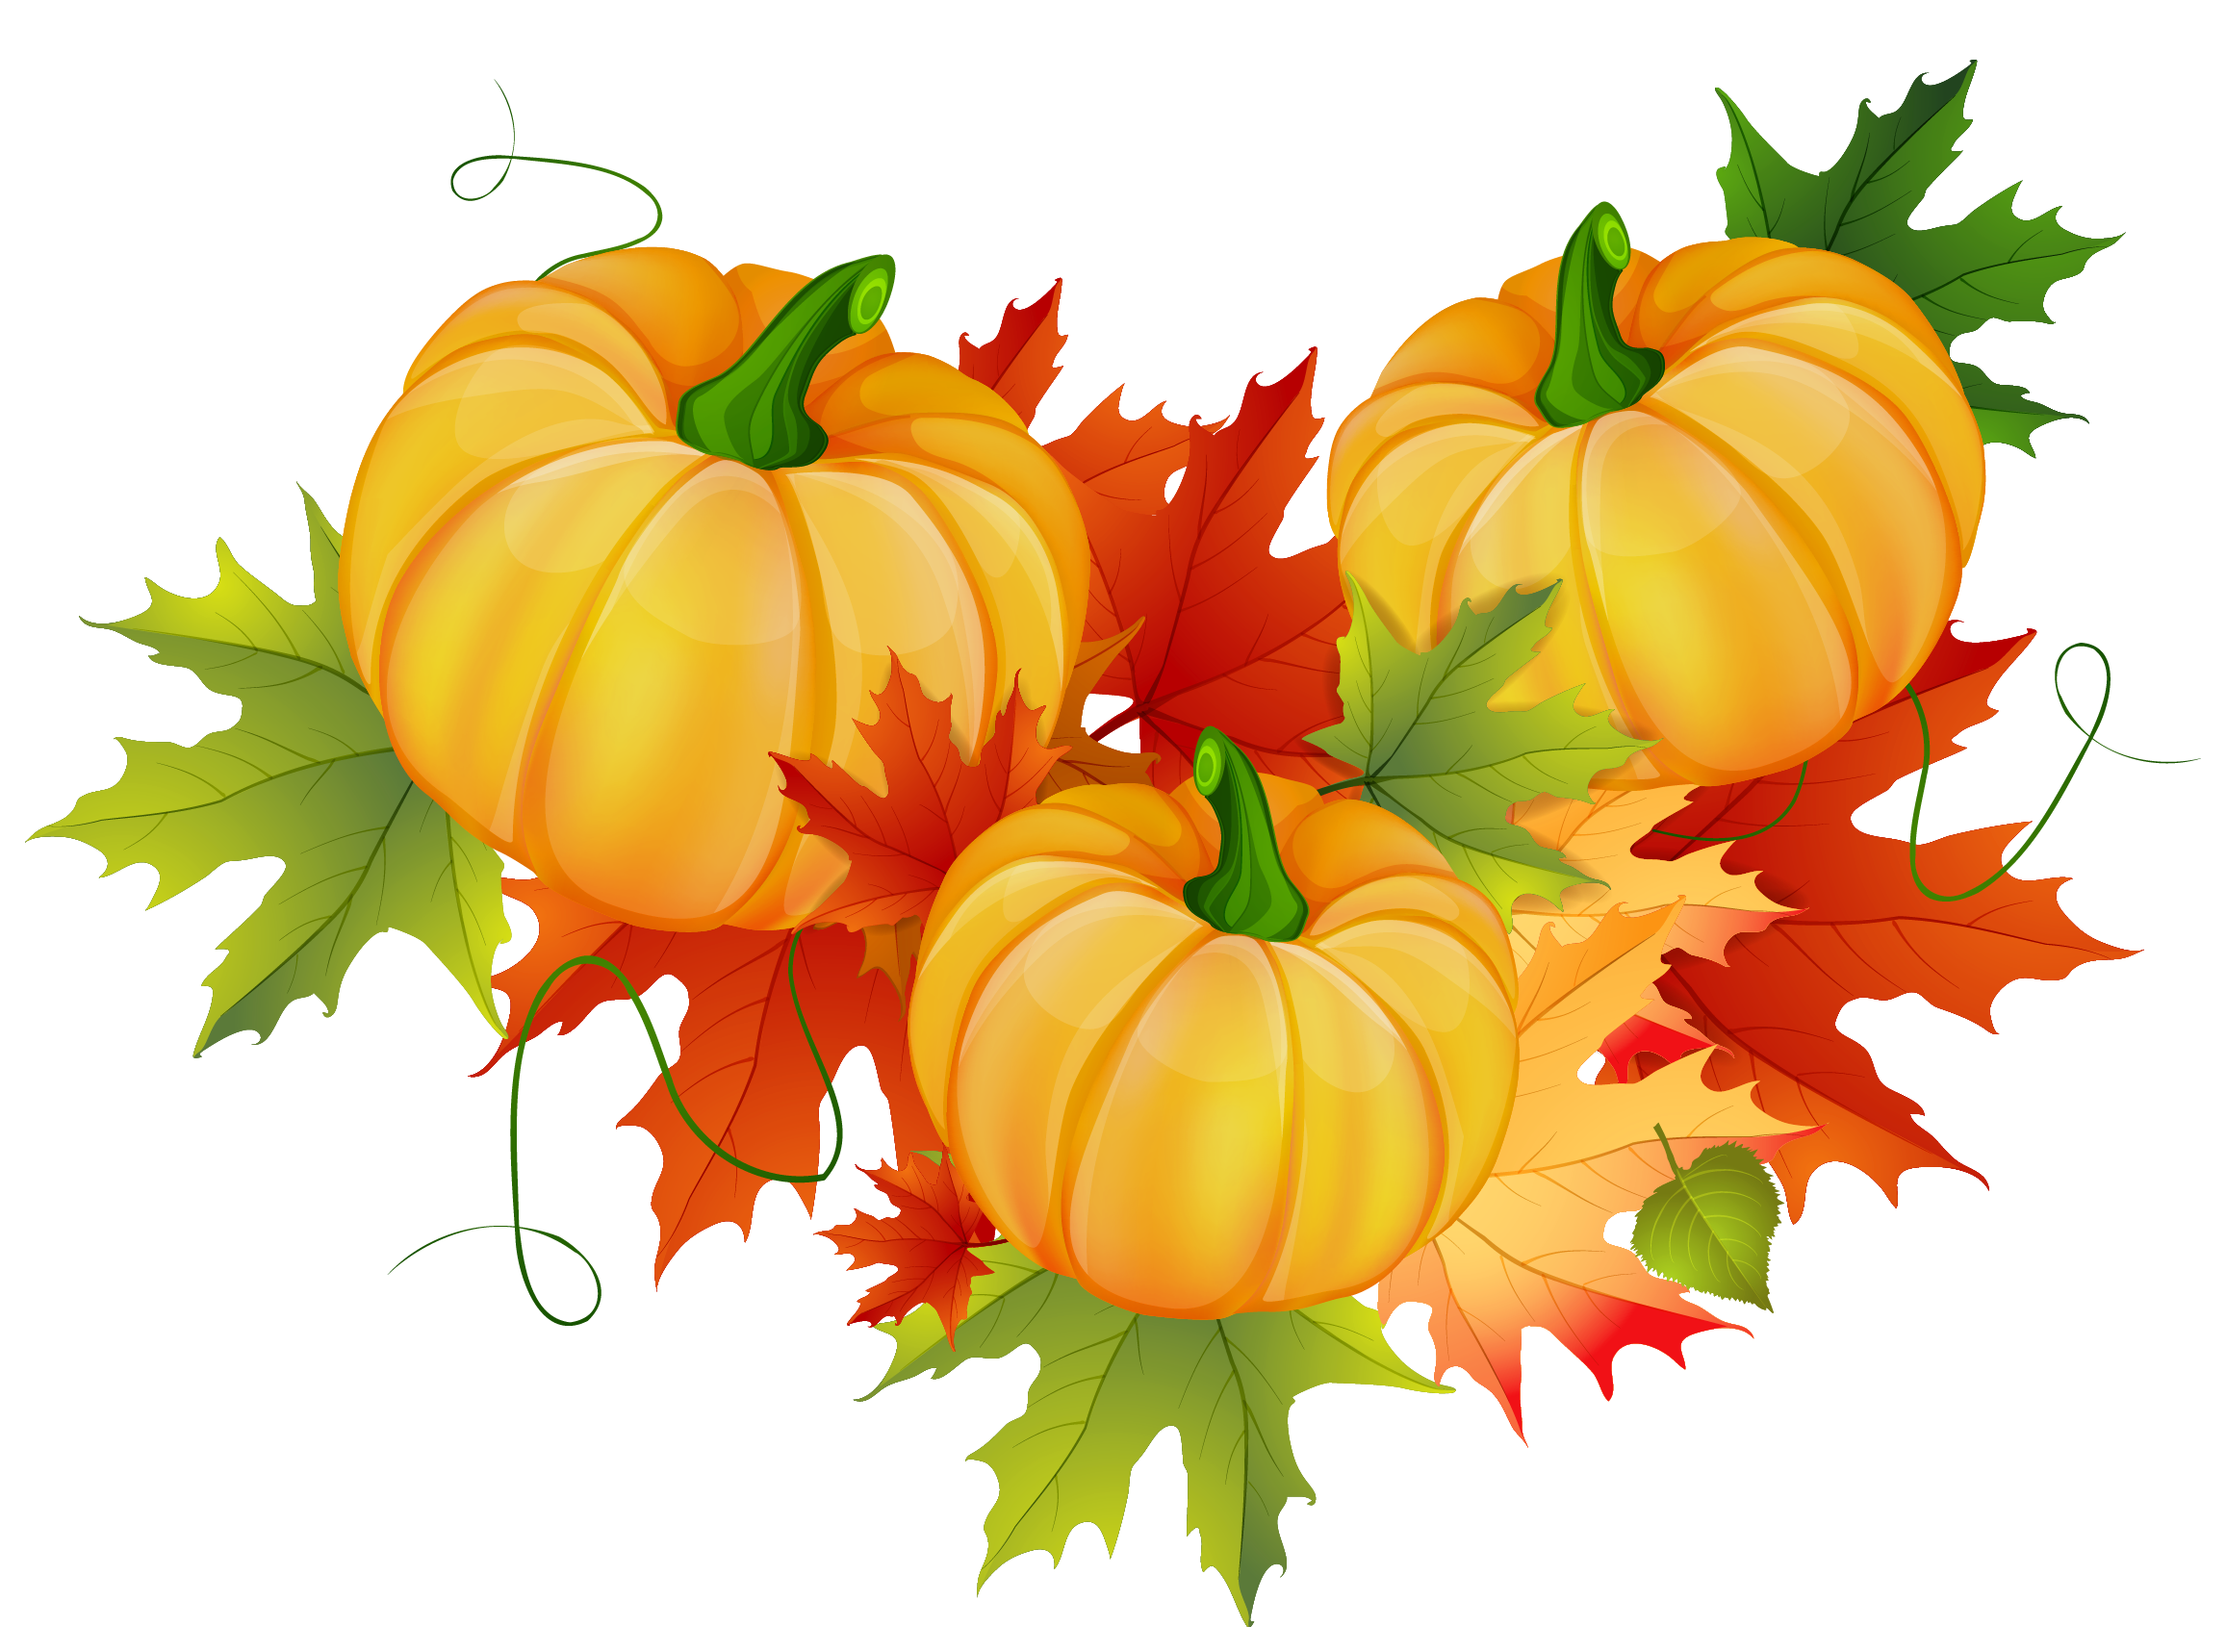 Gourd clipart thanksgiving food Com Download Pic Images Thanksgiving